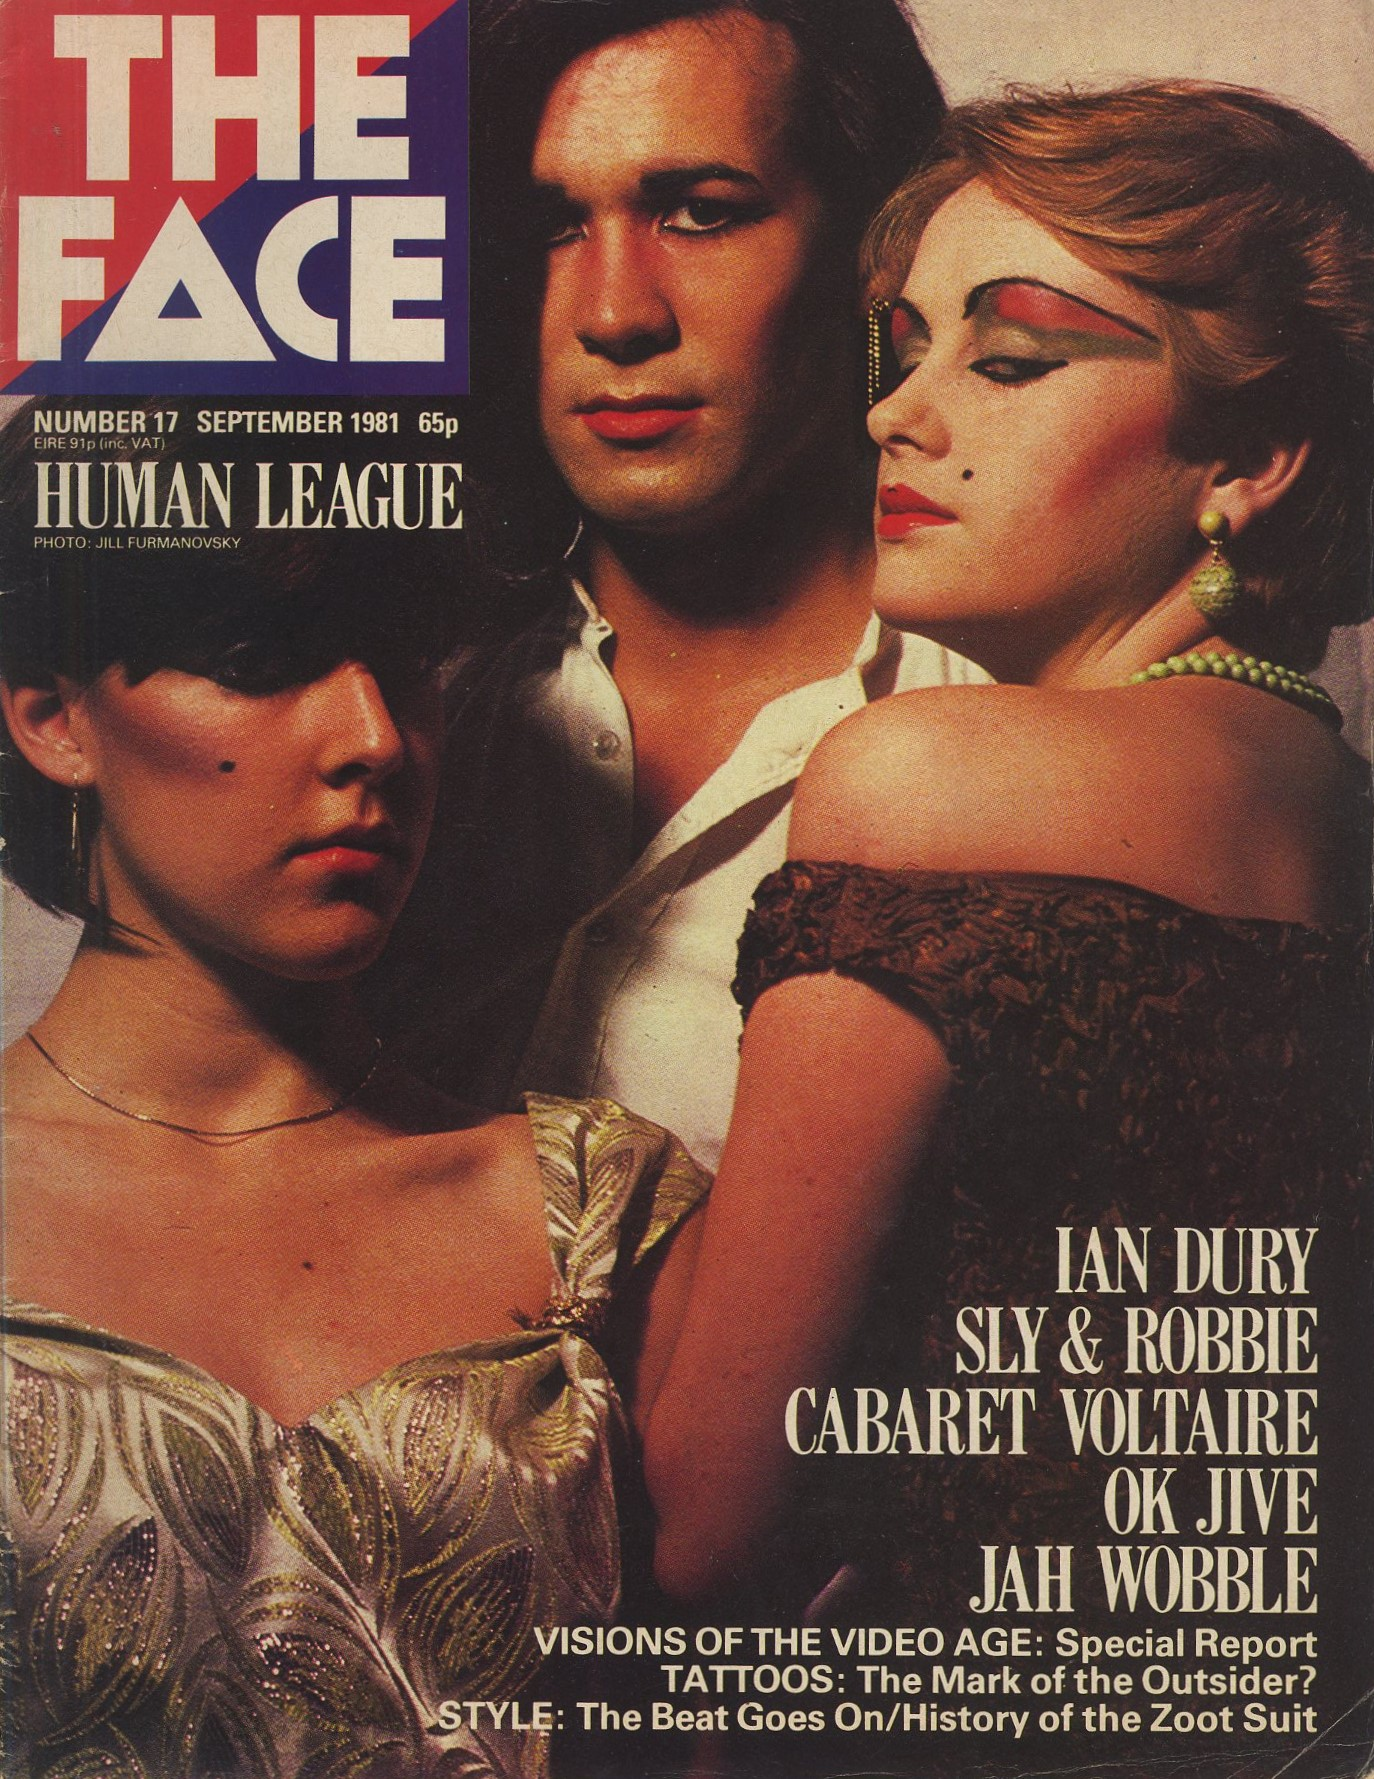 HUMAN LEAGUE | PHOTOGRAPHY JILL FURMANOVSKY | THE FACE | NUMBER 17 | SEPTEMBER 1981